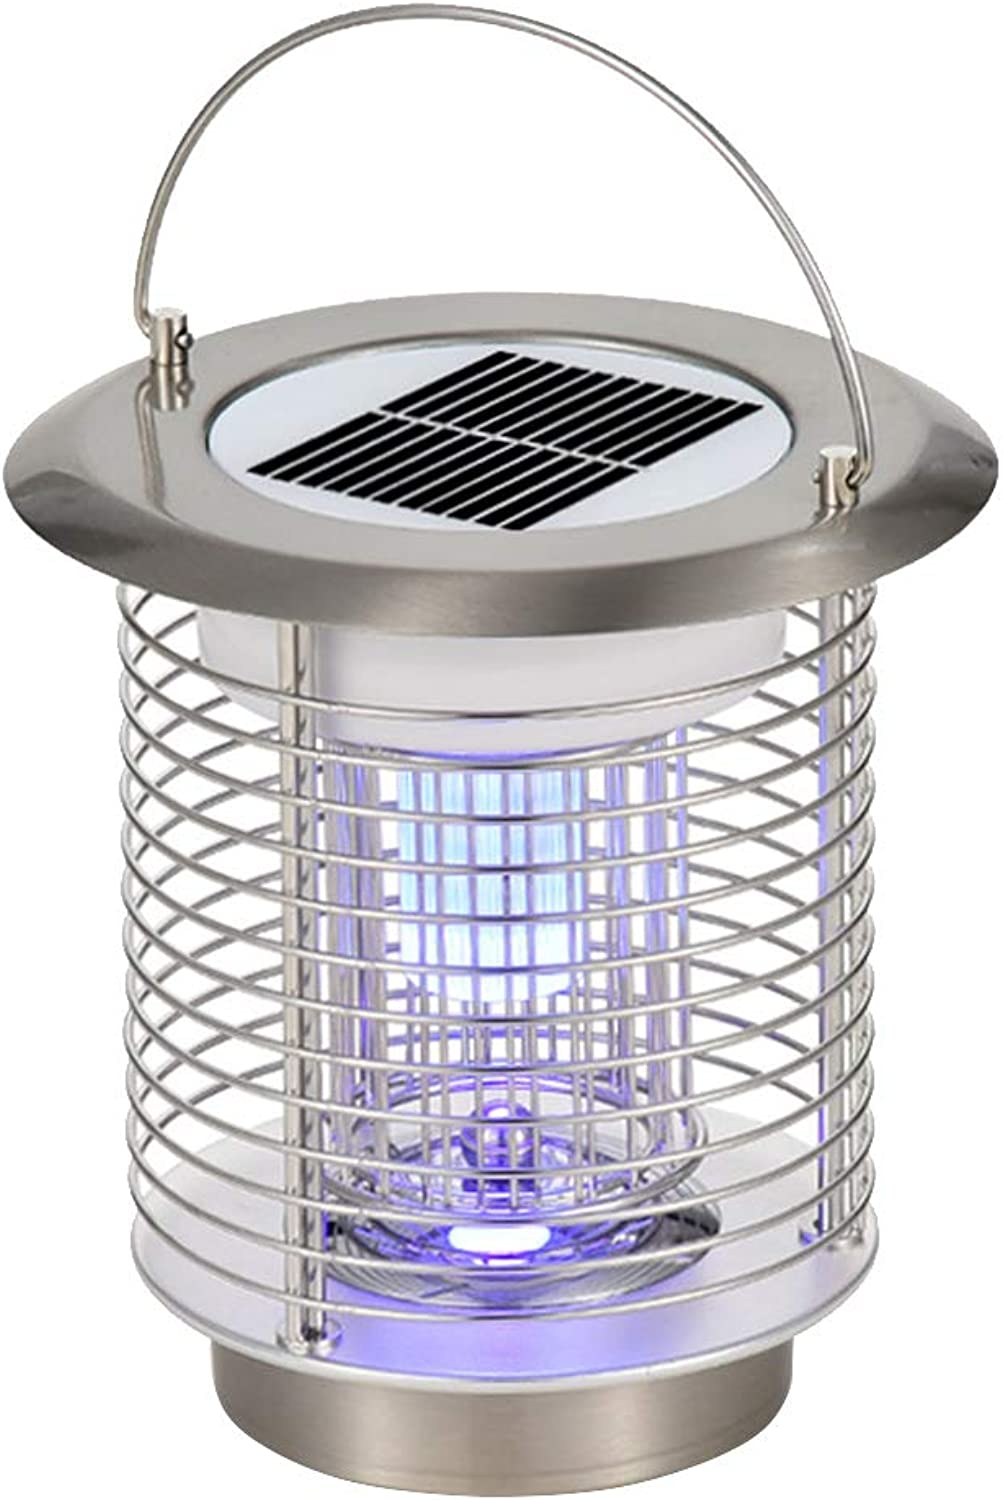 Solar Mosquito Killer, LED PPortable Mosquito Repellent Lamp, Mosquito Insect Lamp per Garden Yard Lawn Camping (Silver)